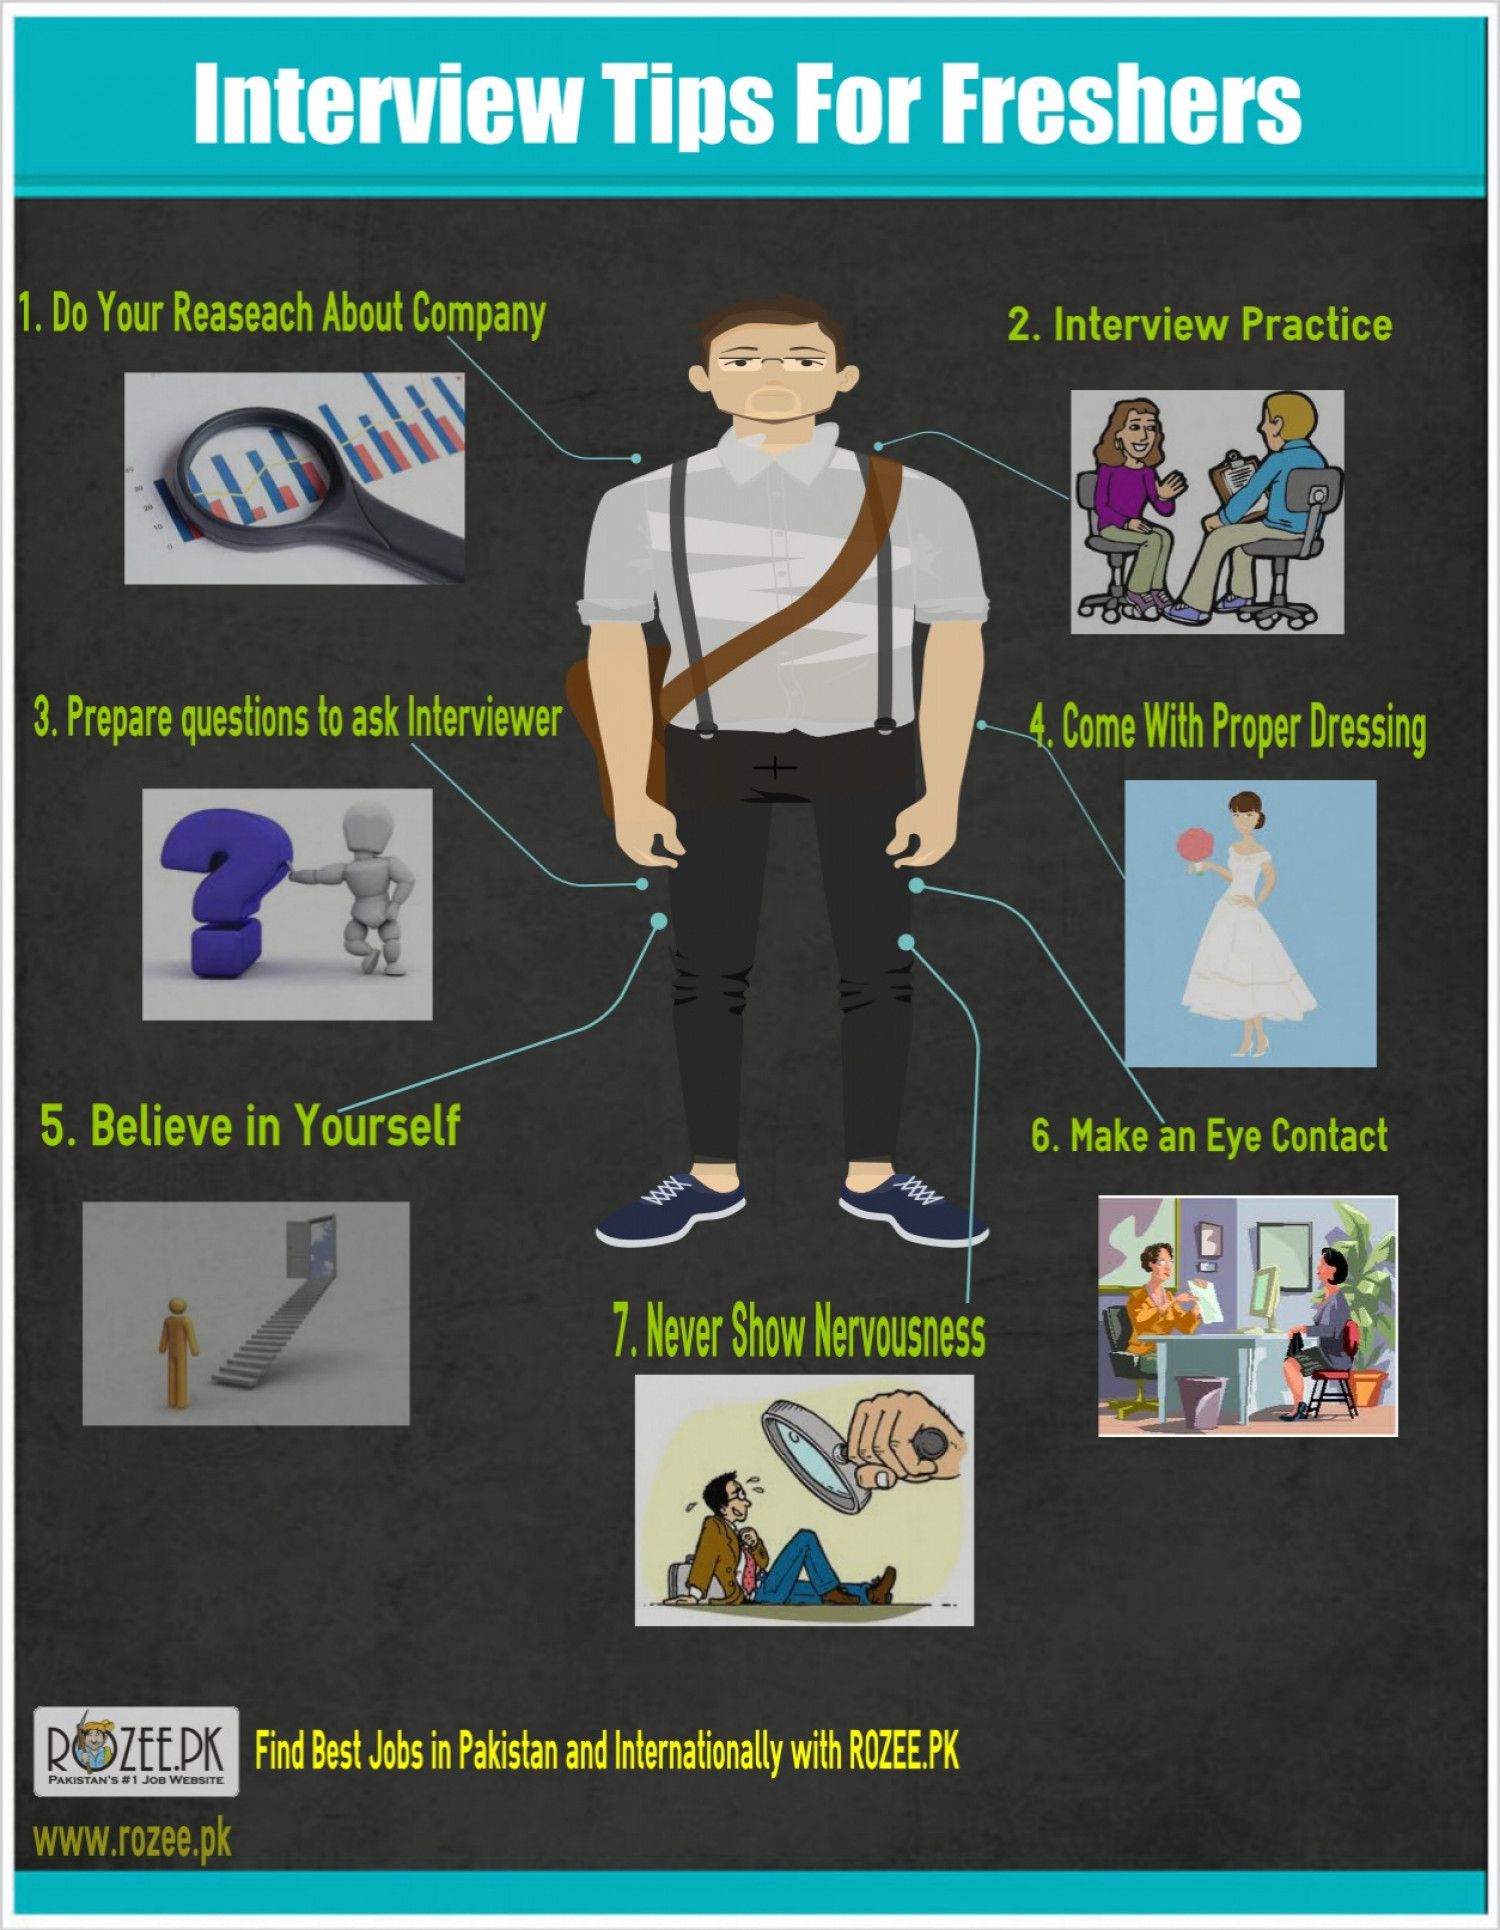 interview tips for fresh graduates visual ly interview tips for fresh graduates infographic